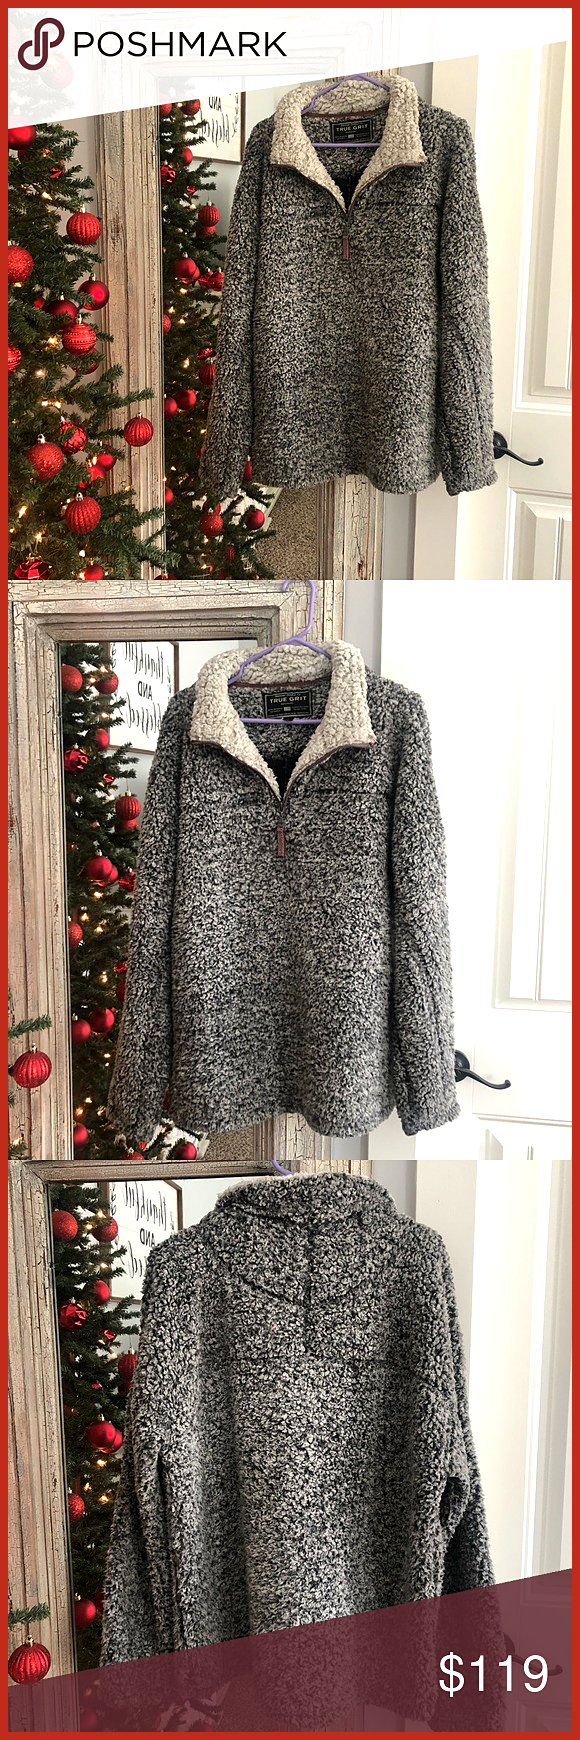 TRUE GRIT FUZZY PULLOVER Hit the for a private offer Pullover is in PERFECT condition Only worn once or twice True Grit Tops TRUE GRIT FUZZY PULLOVER Hit the for a privat...